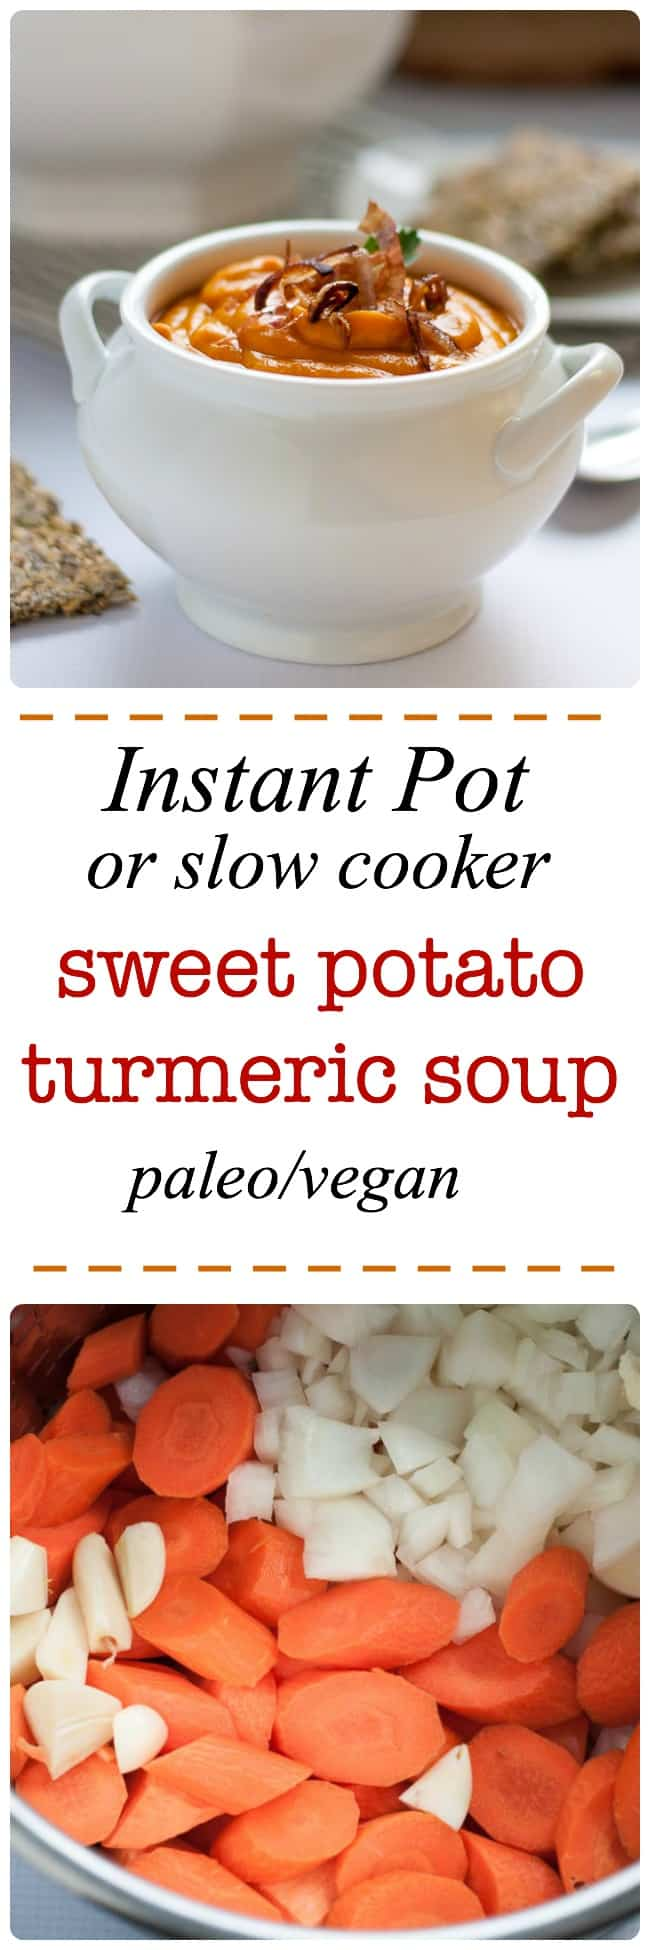 You'll love this Instant Pot or Slow Cooker Sweet Potato Turmeric Soup.  This vegetarian soup is a little sweet with a bit of a kick! It's vegan and paleo. A warm, comforting soup for a fall or winter day. #vegan #paleo #whole30 #instantpot #soup #sweetpotato #turmeric